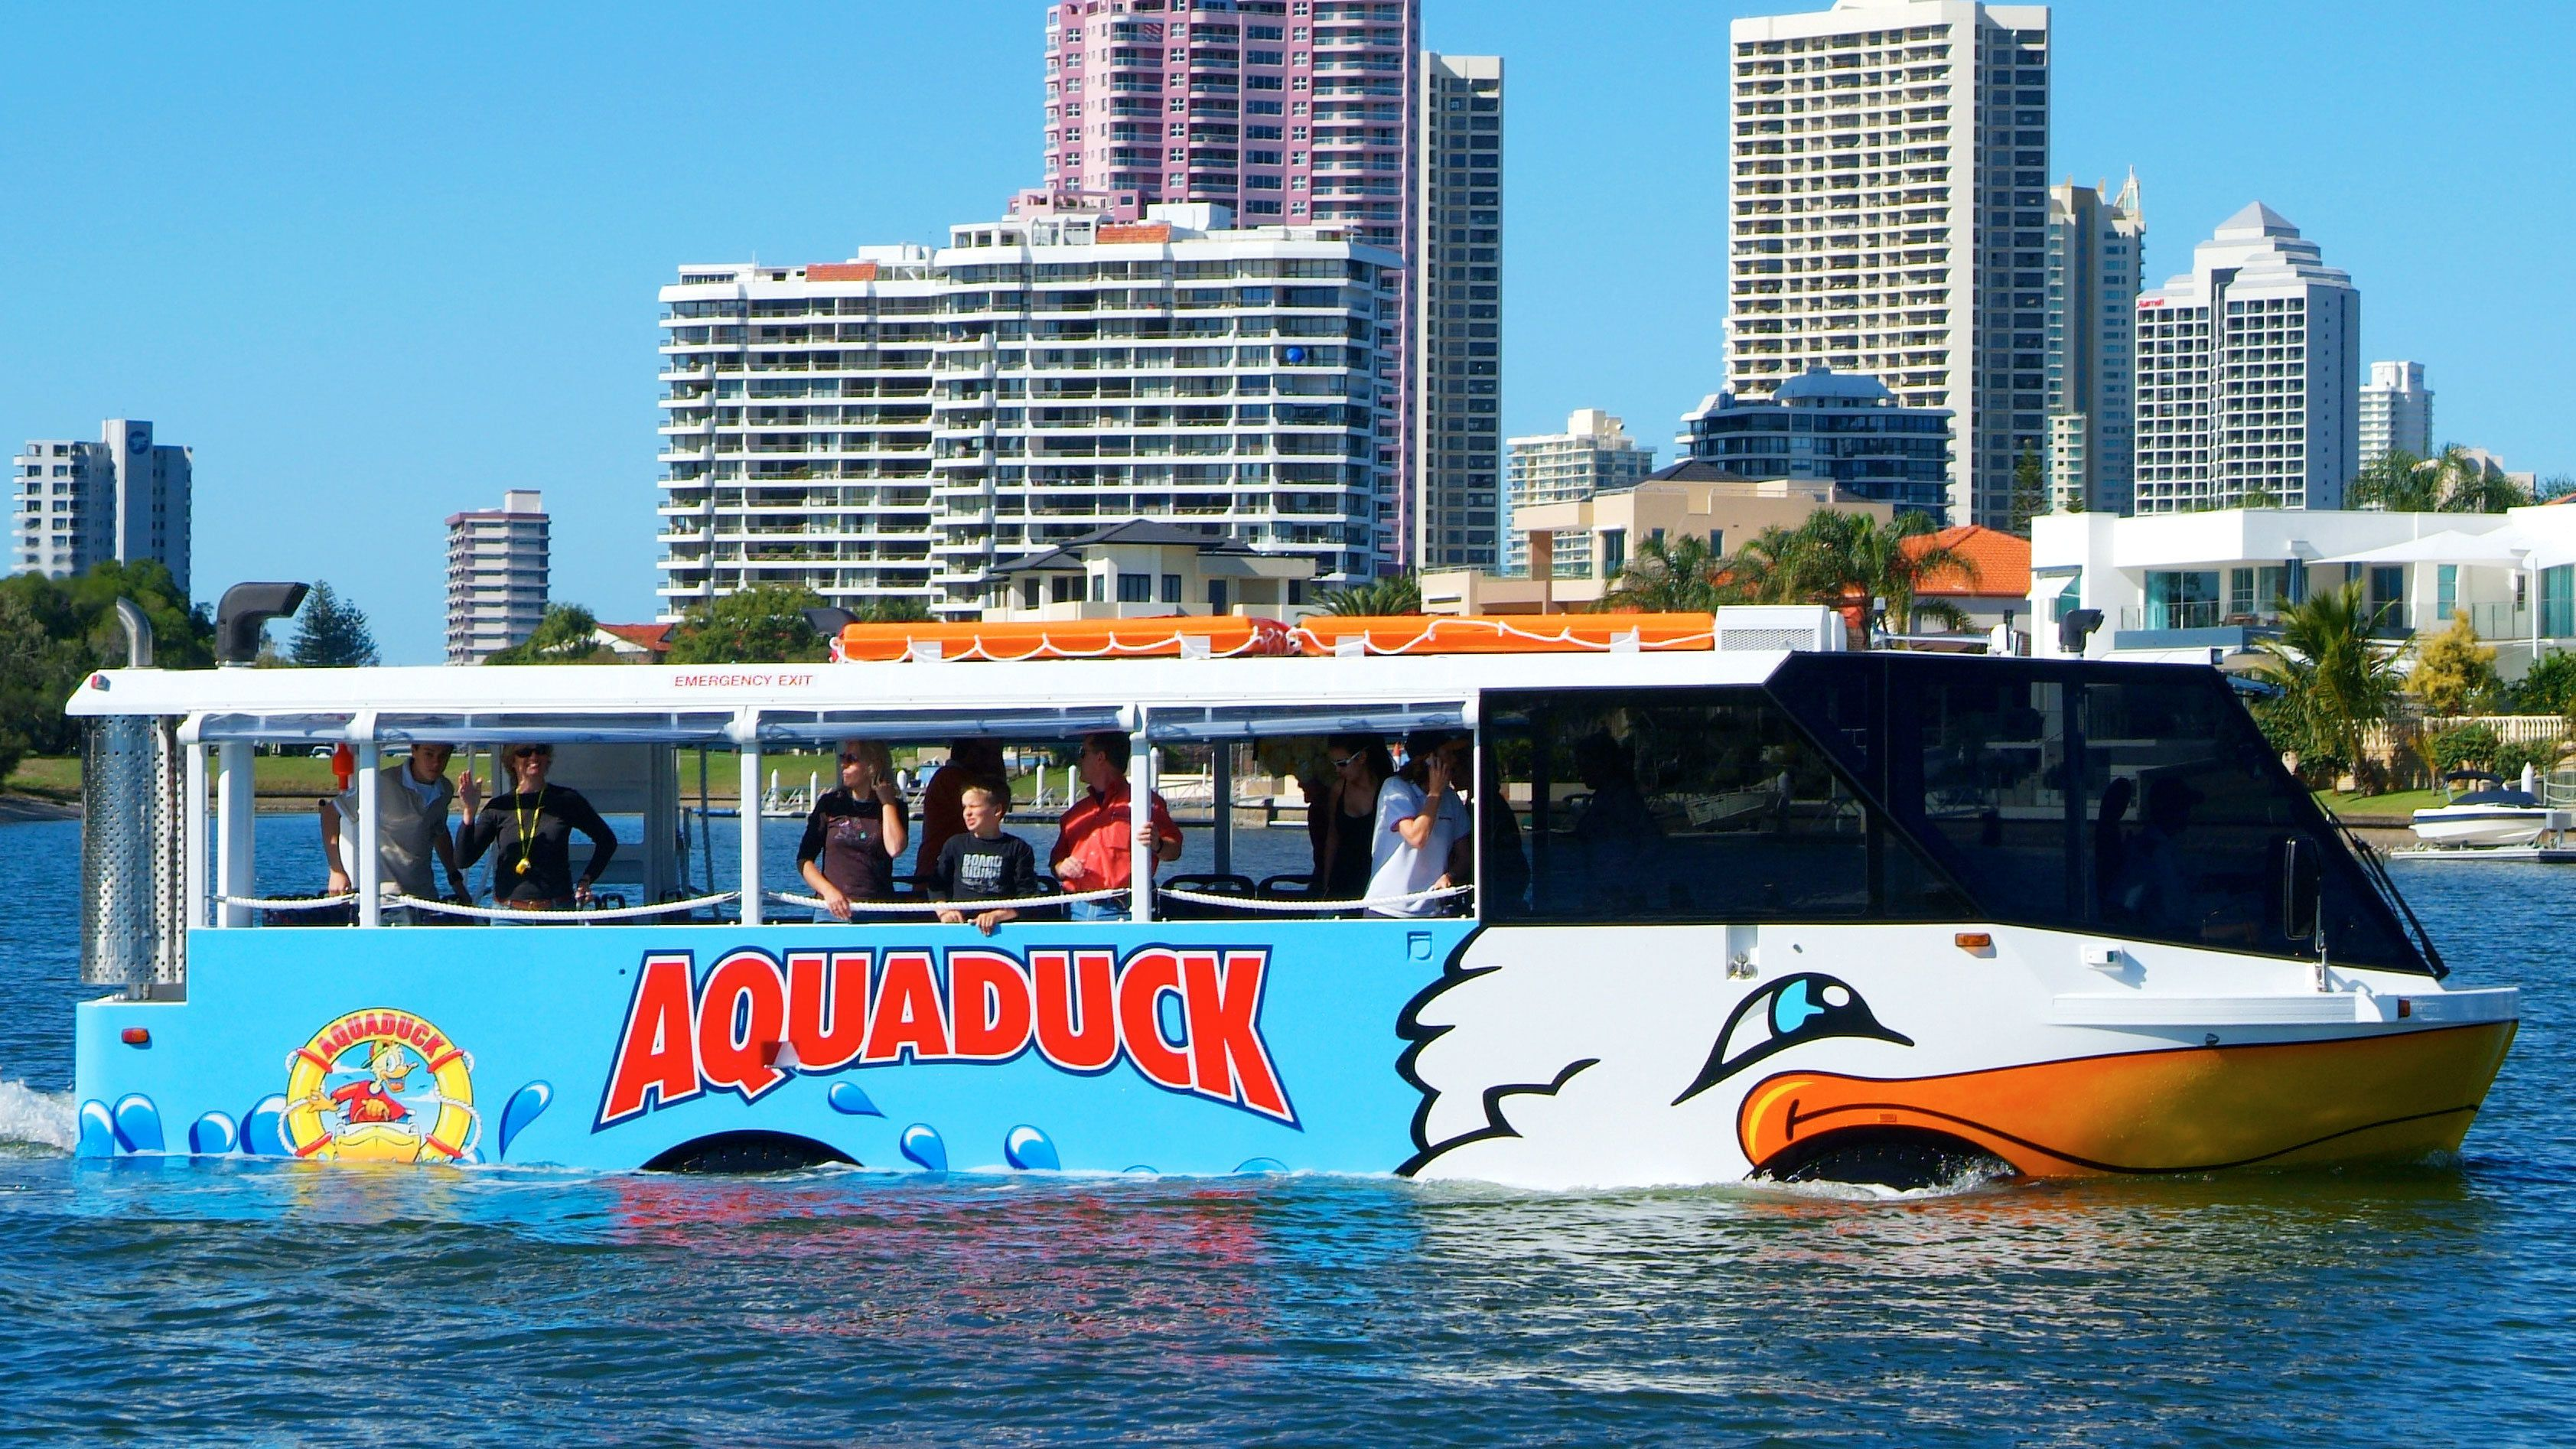 Aquaduck Gold Coast Sightseeing Tour and River Cruise